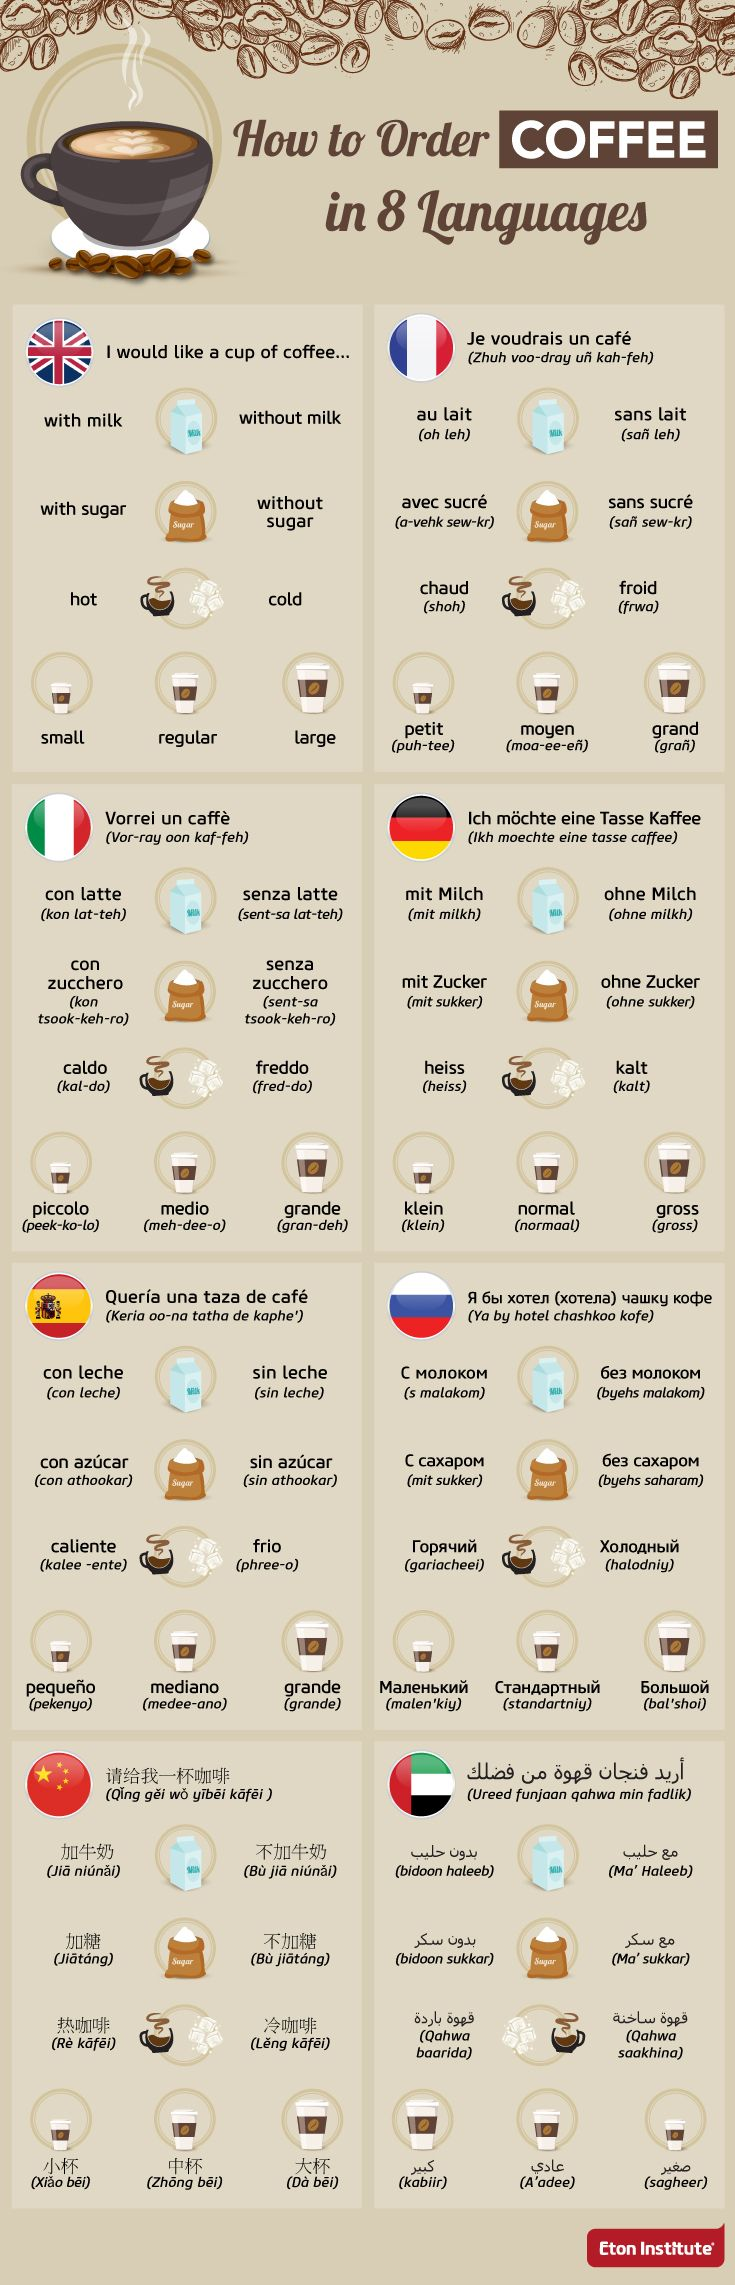 Have you ever wondered how people from around the world get their coffee fix? Here's how to order coffee in popular world languages.